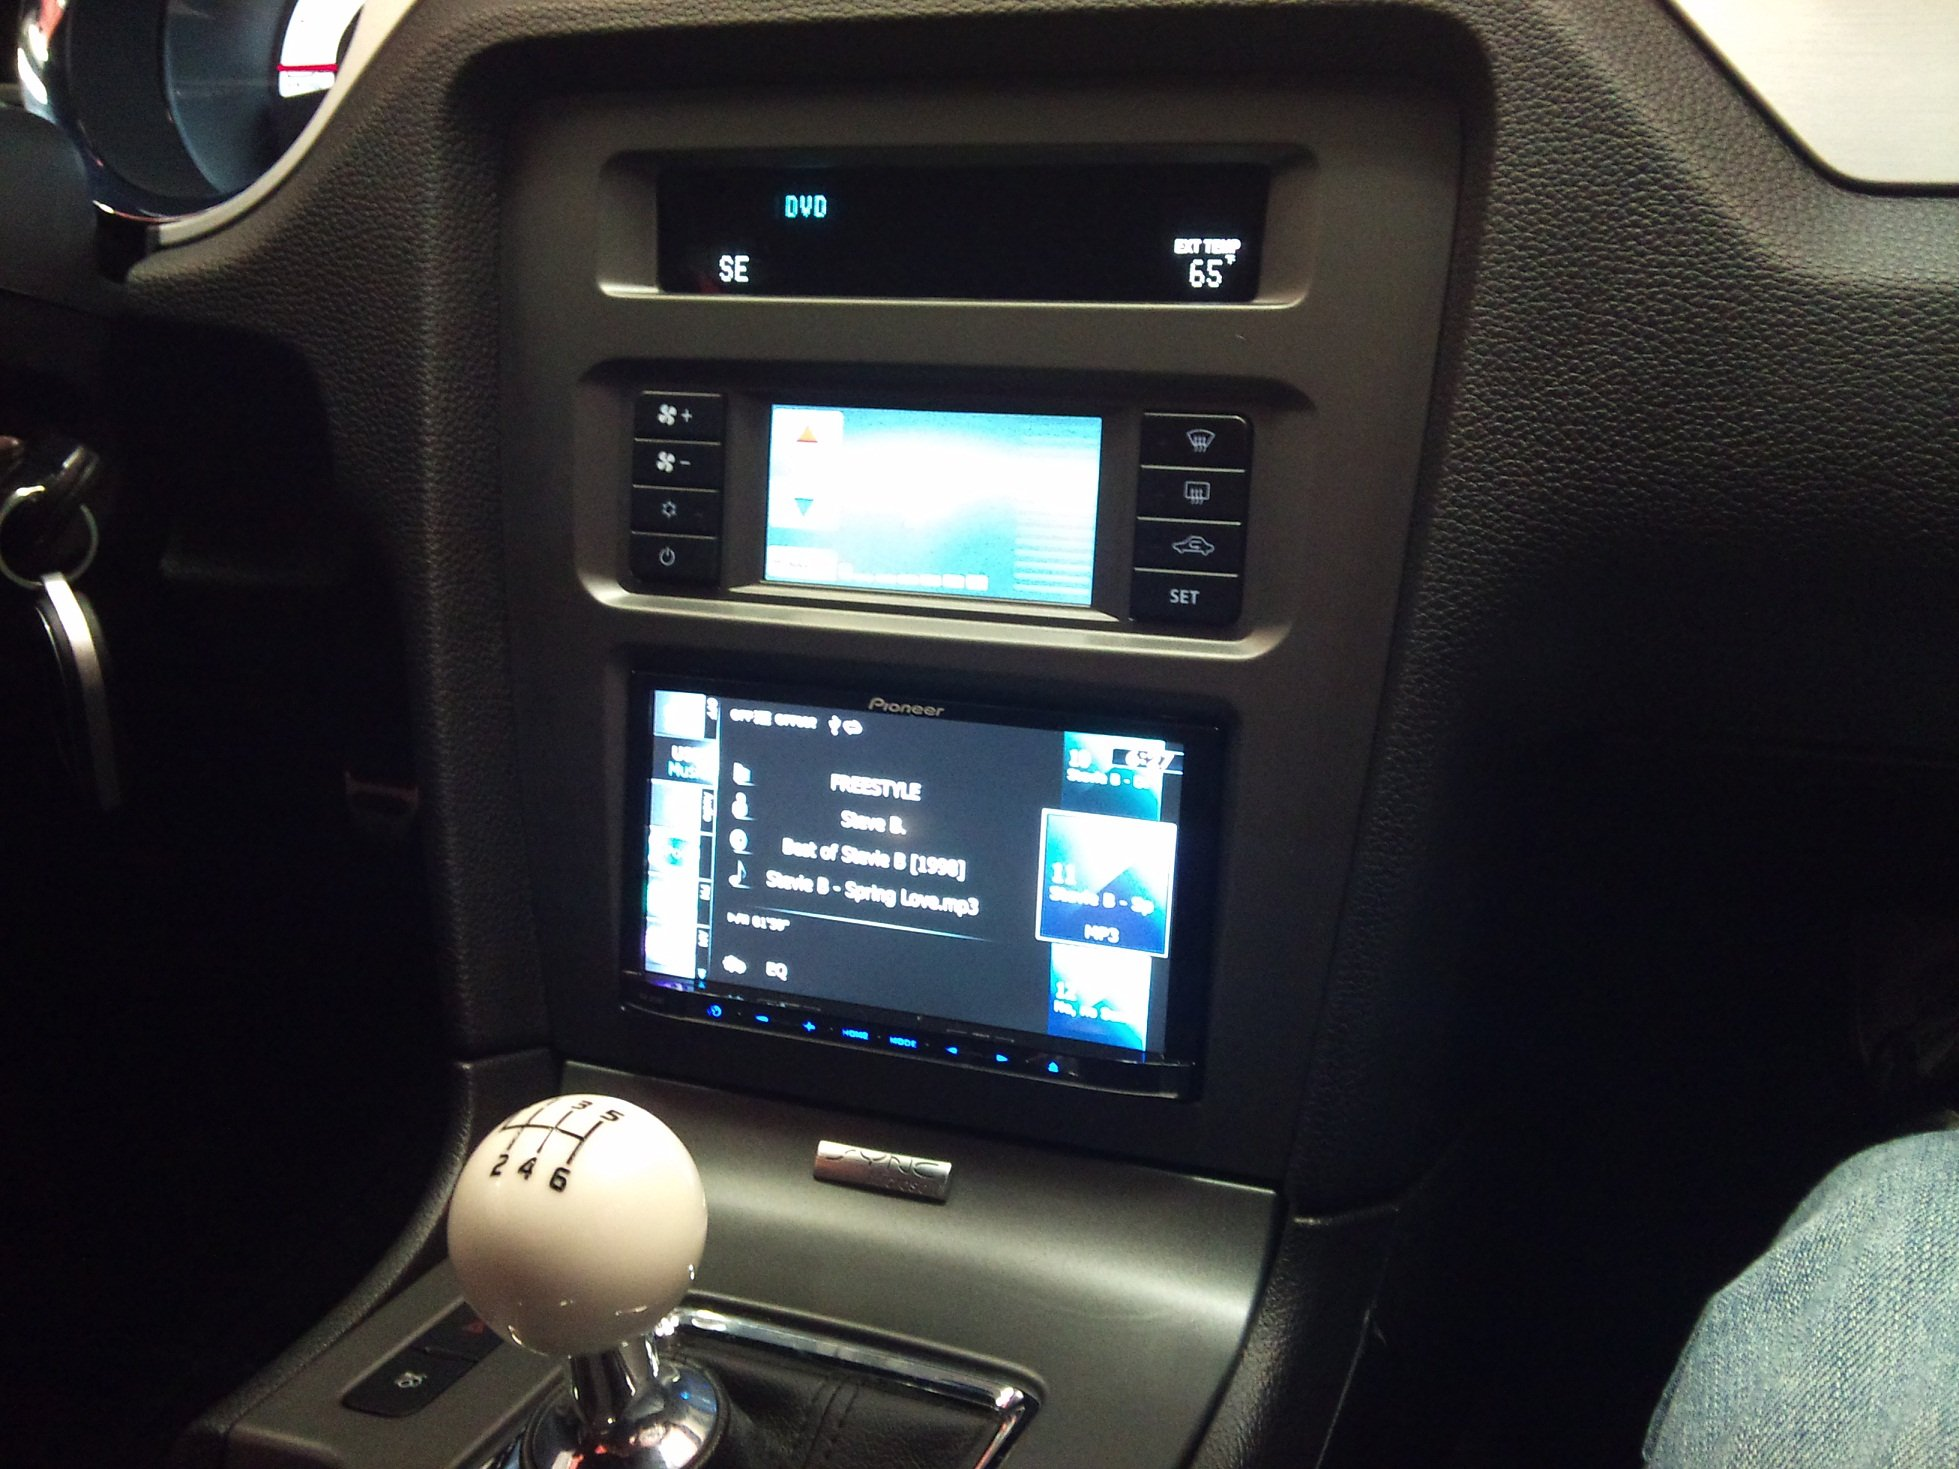 2014 Mustang Wiring Harness Metra Schematic Diagrams Car Stereo On Diagram Ford New Install Dash Kit Avic 110bt Page 2 Rear Speakers